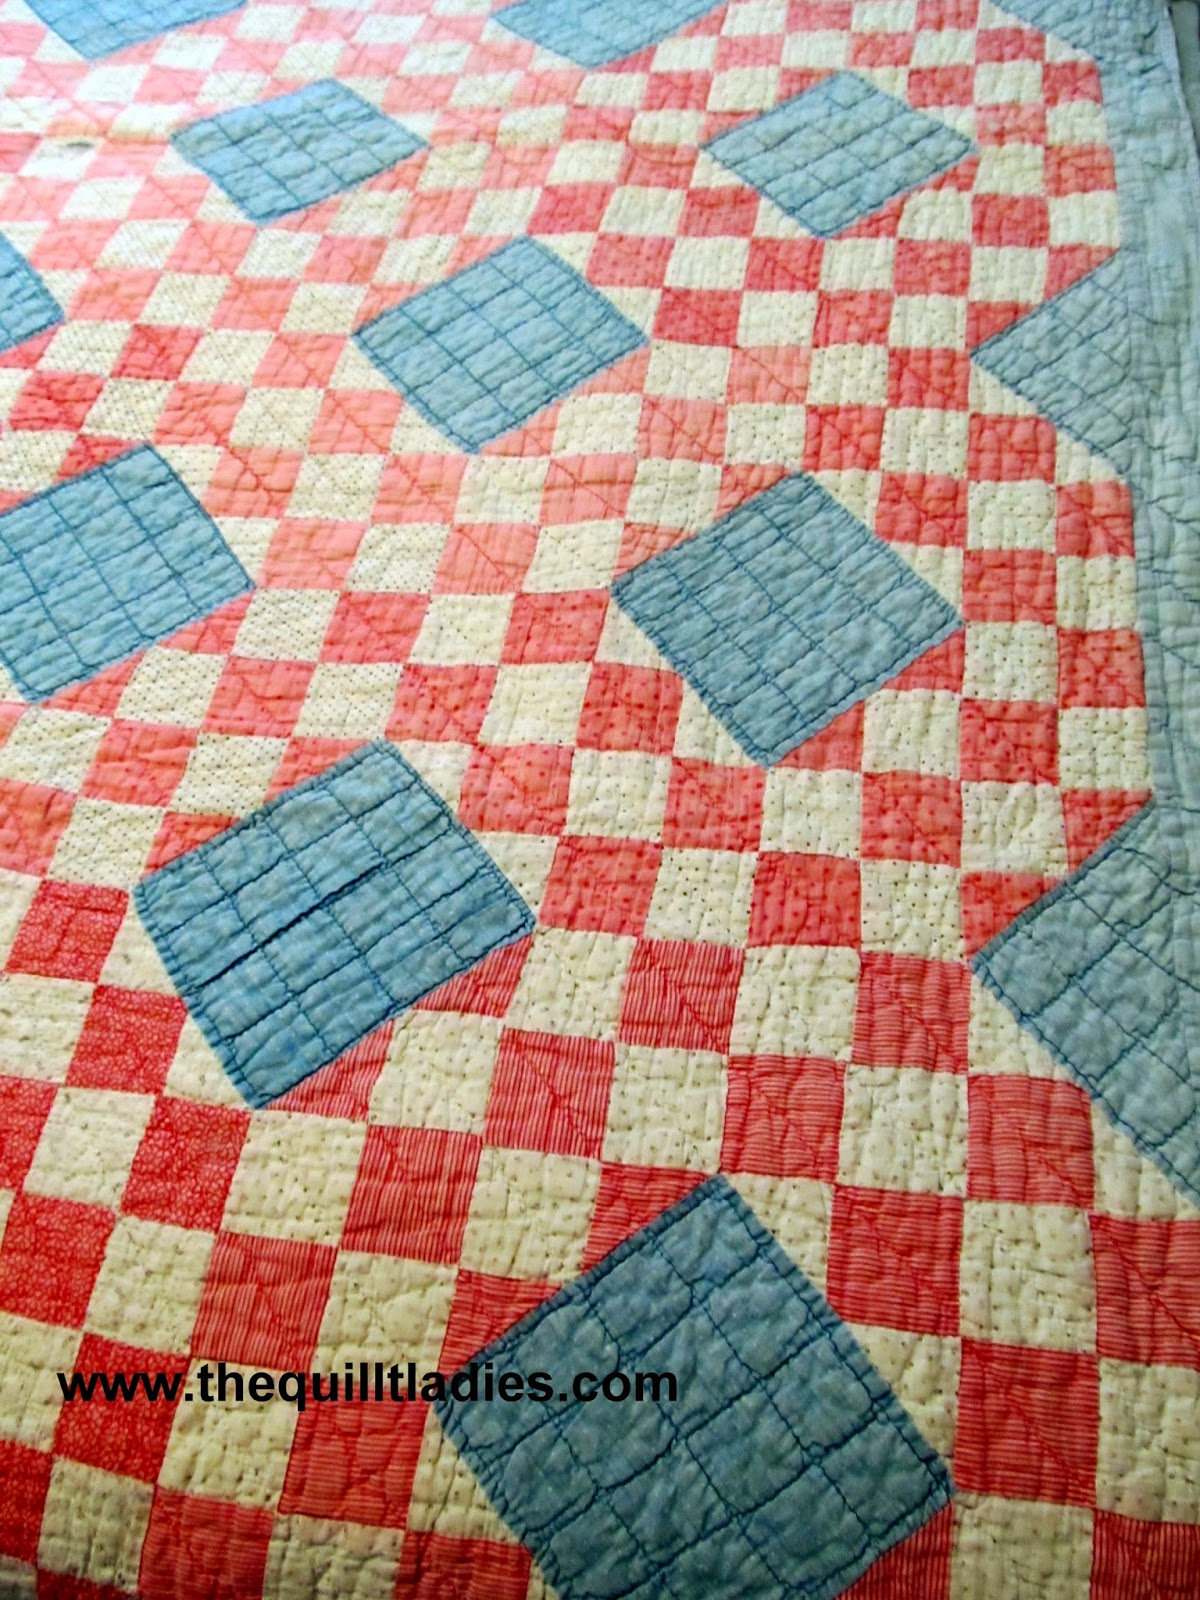 How I washed an old quilt